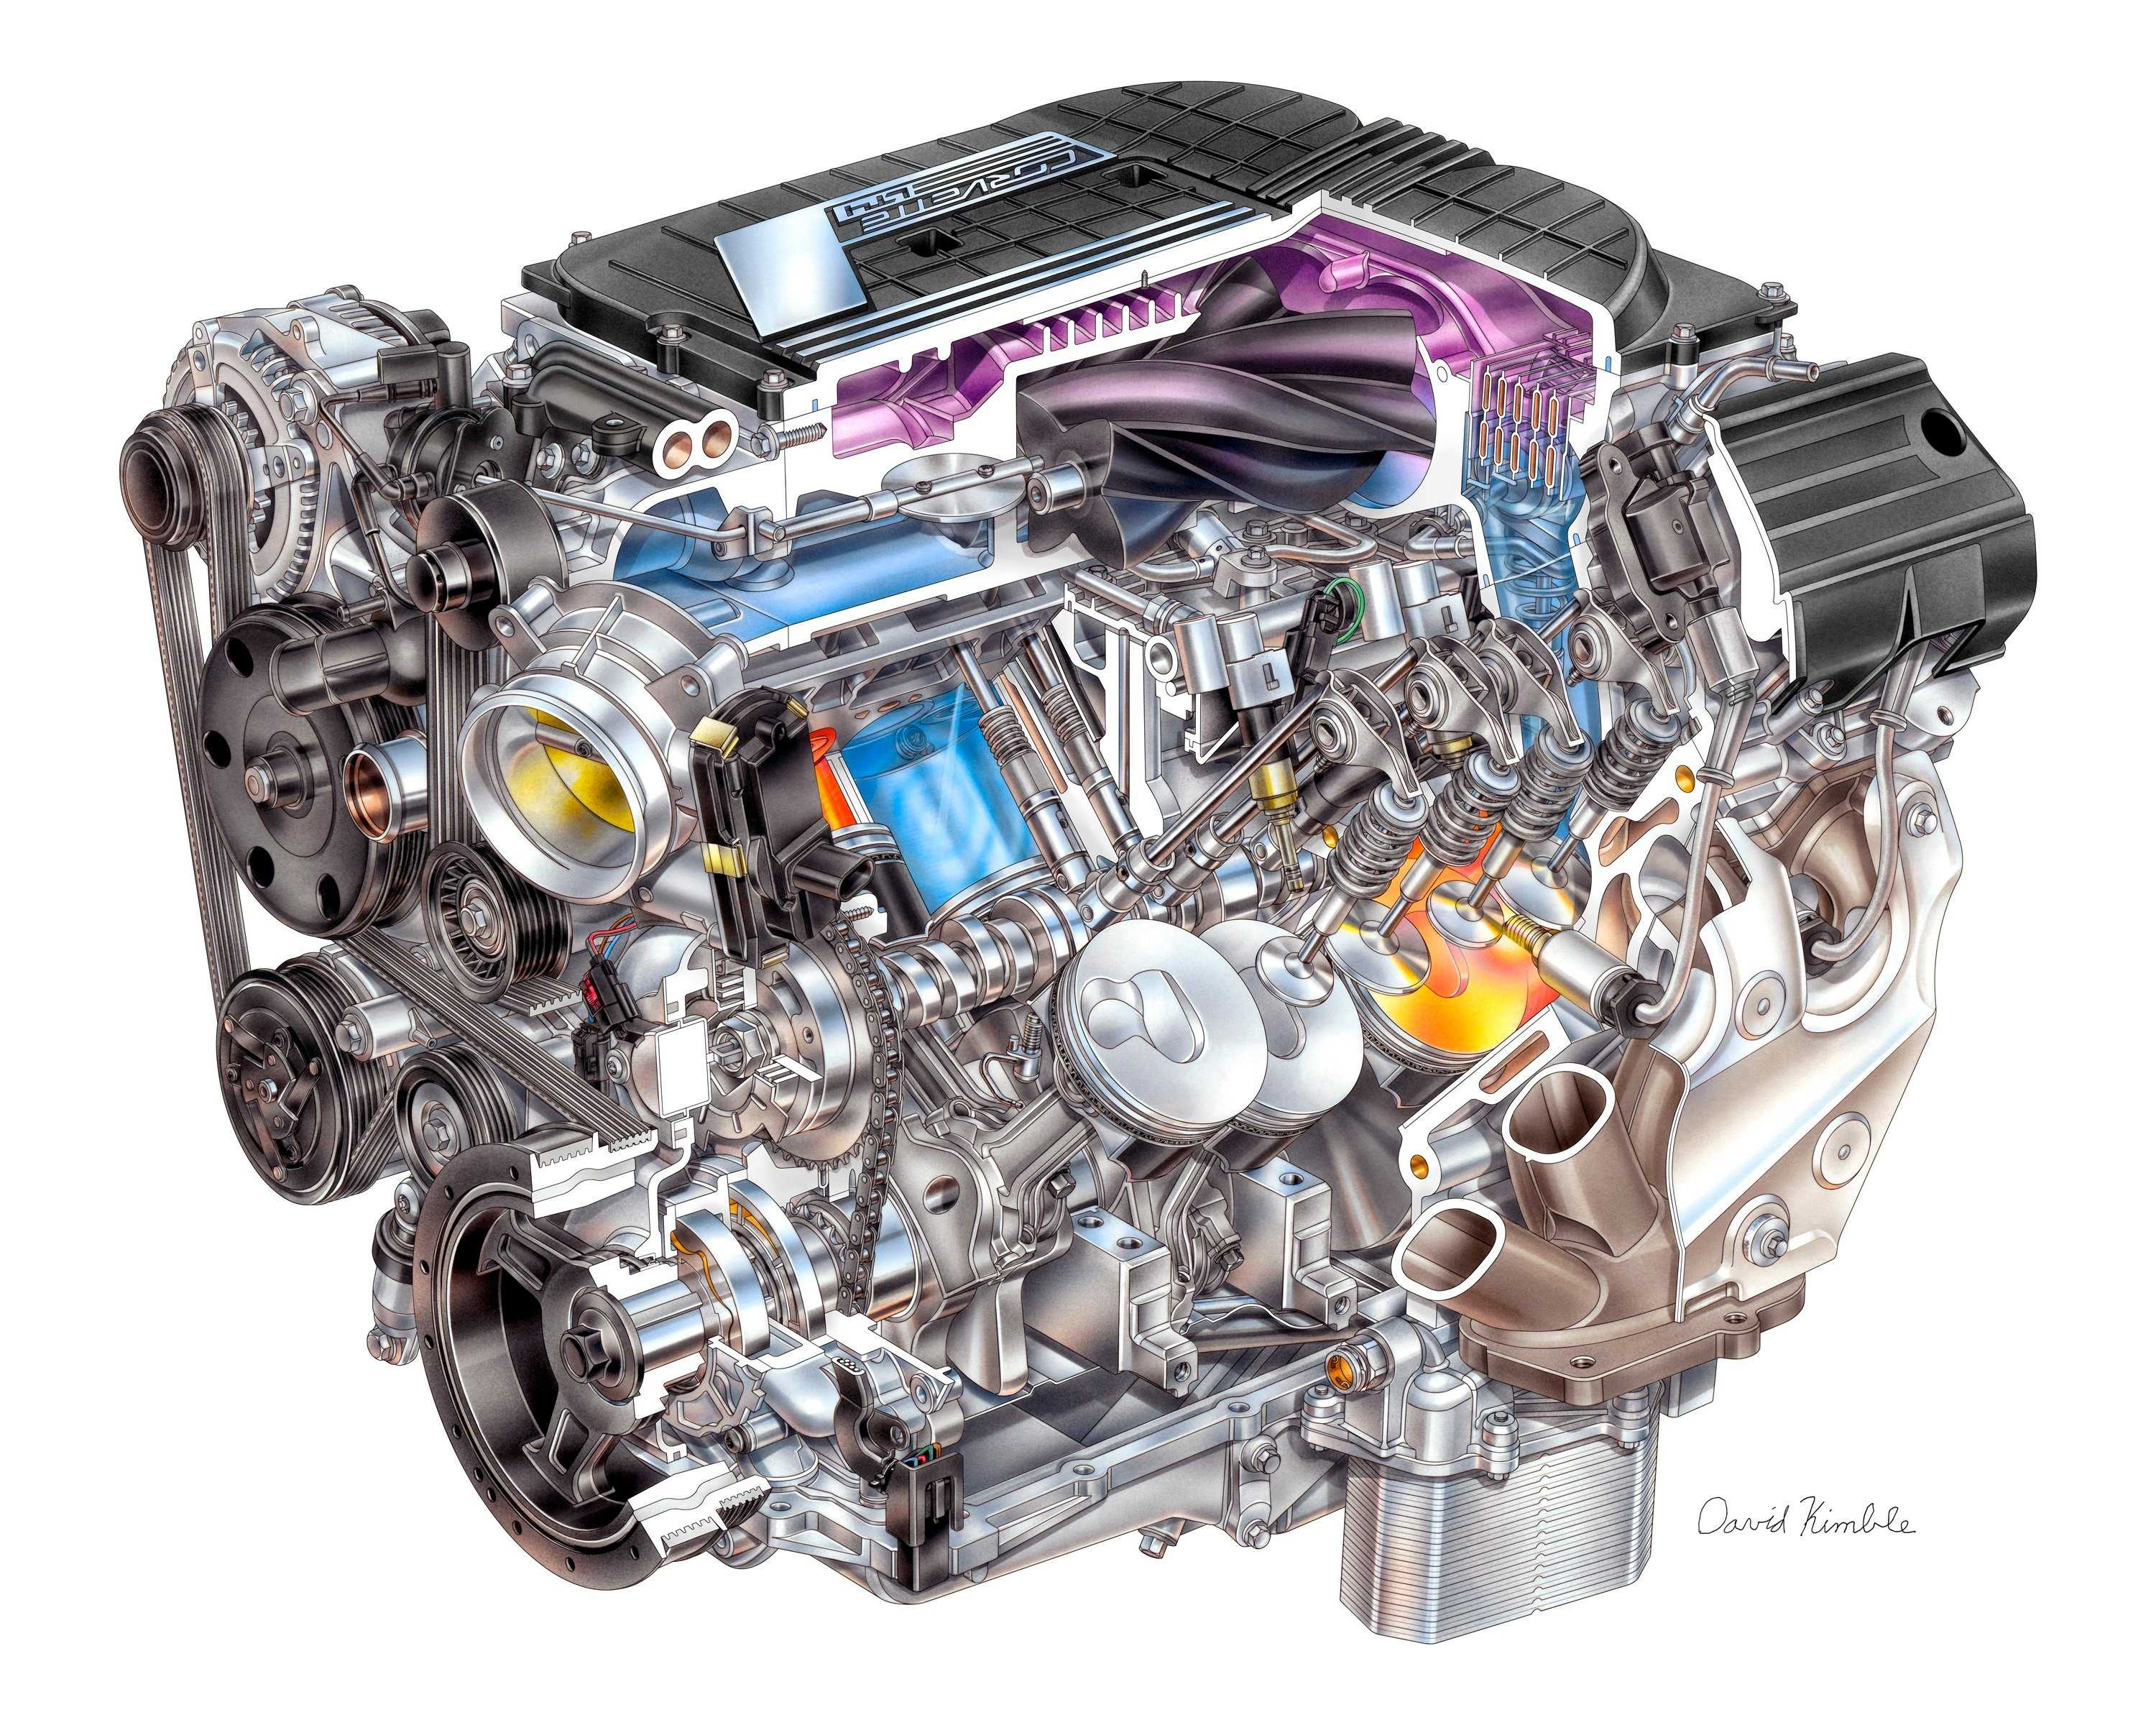 GDI - Gasoline Direct Injection - The Future of High Perf Engines